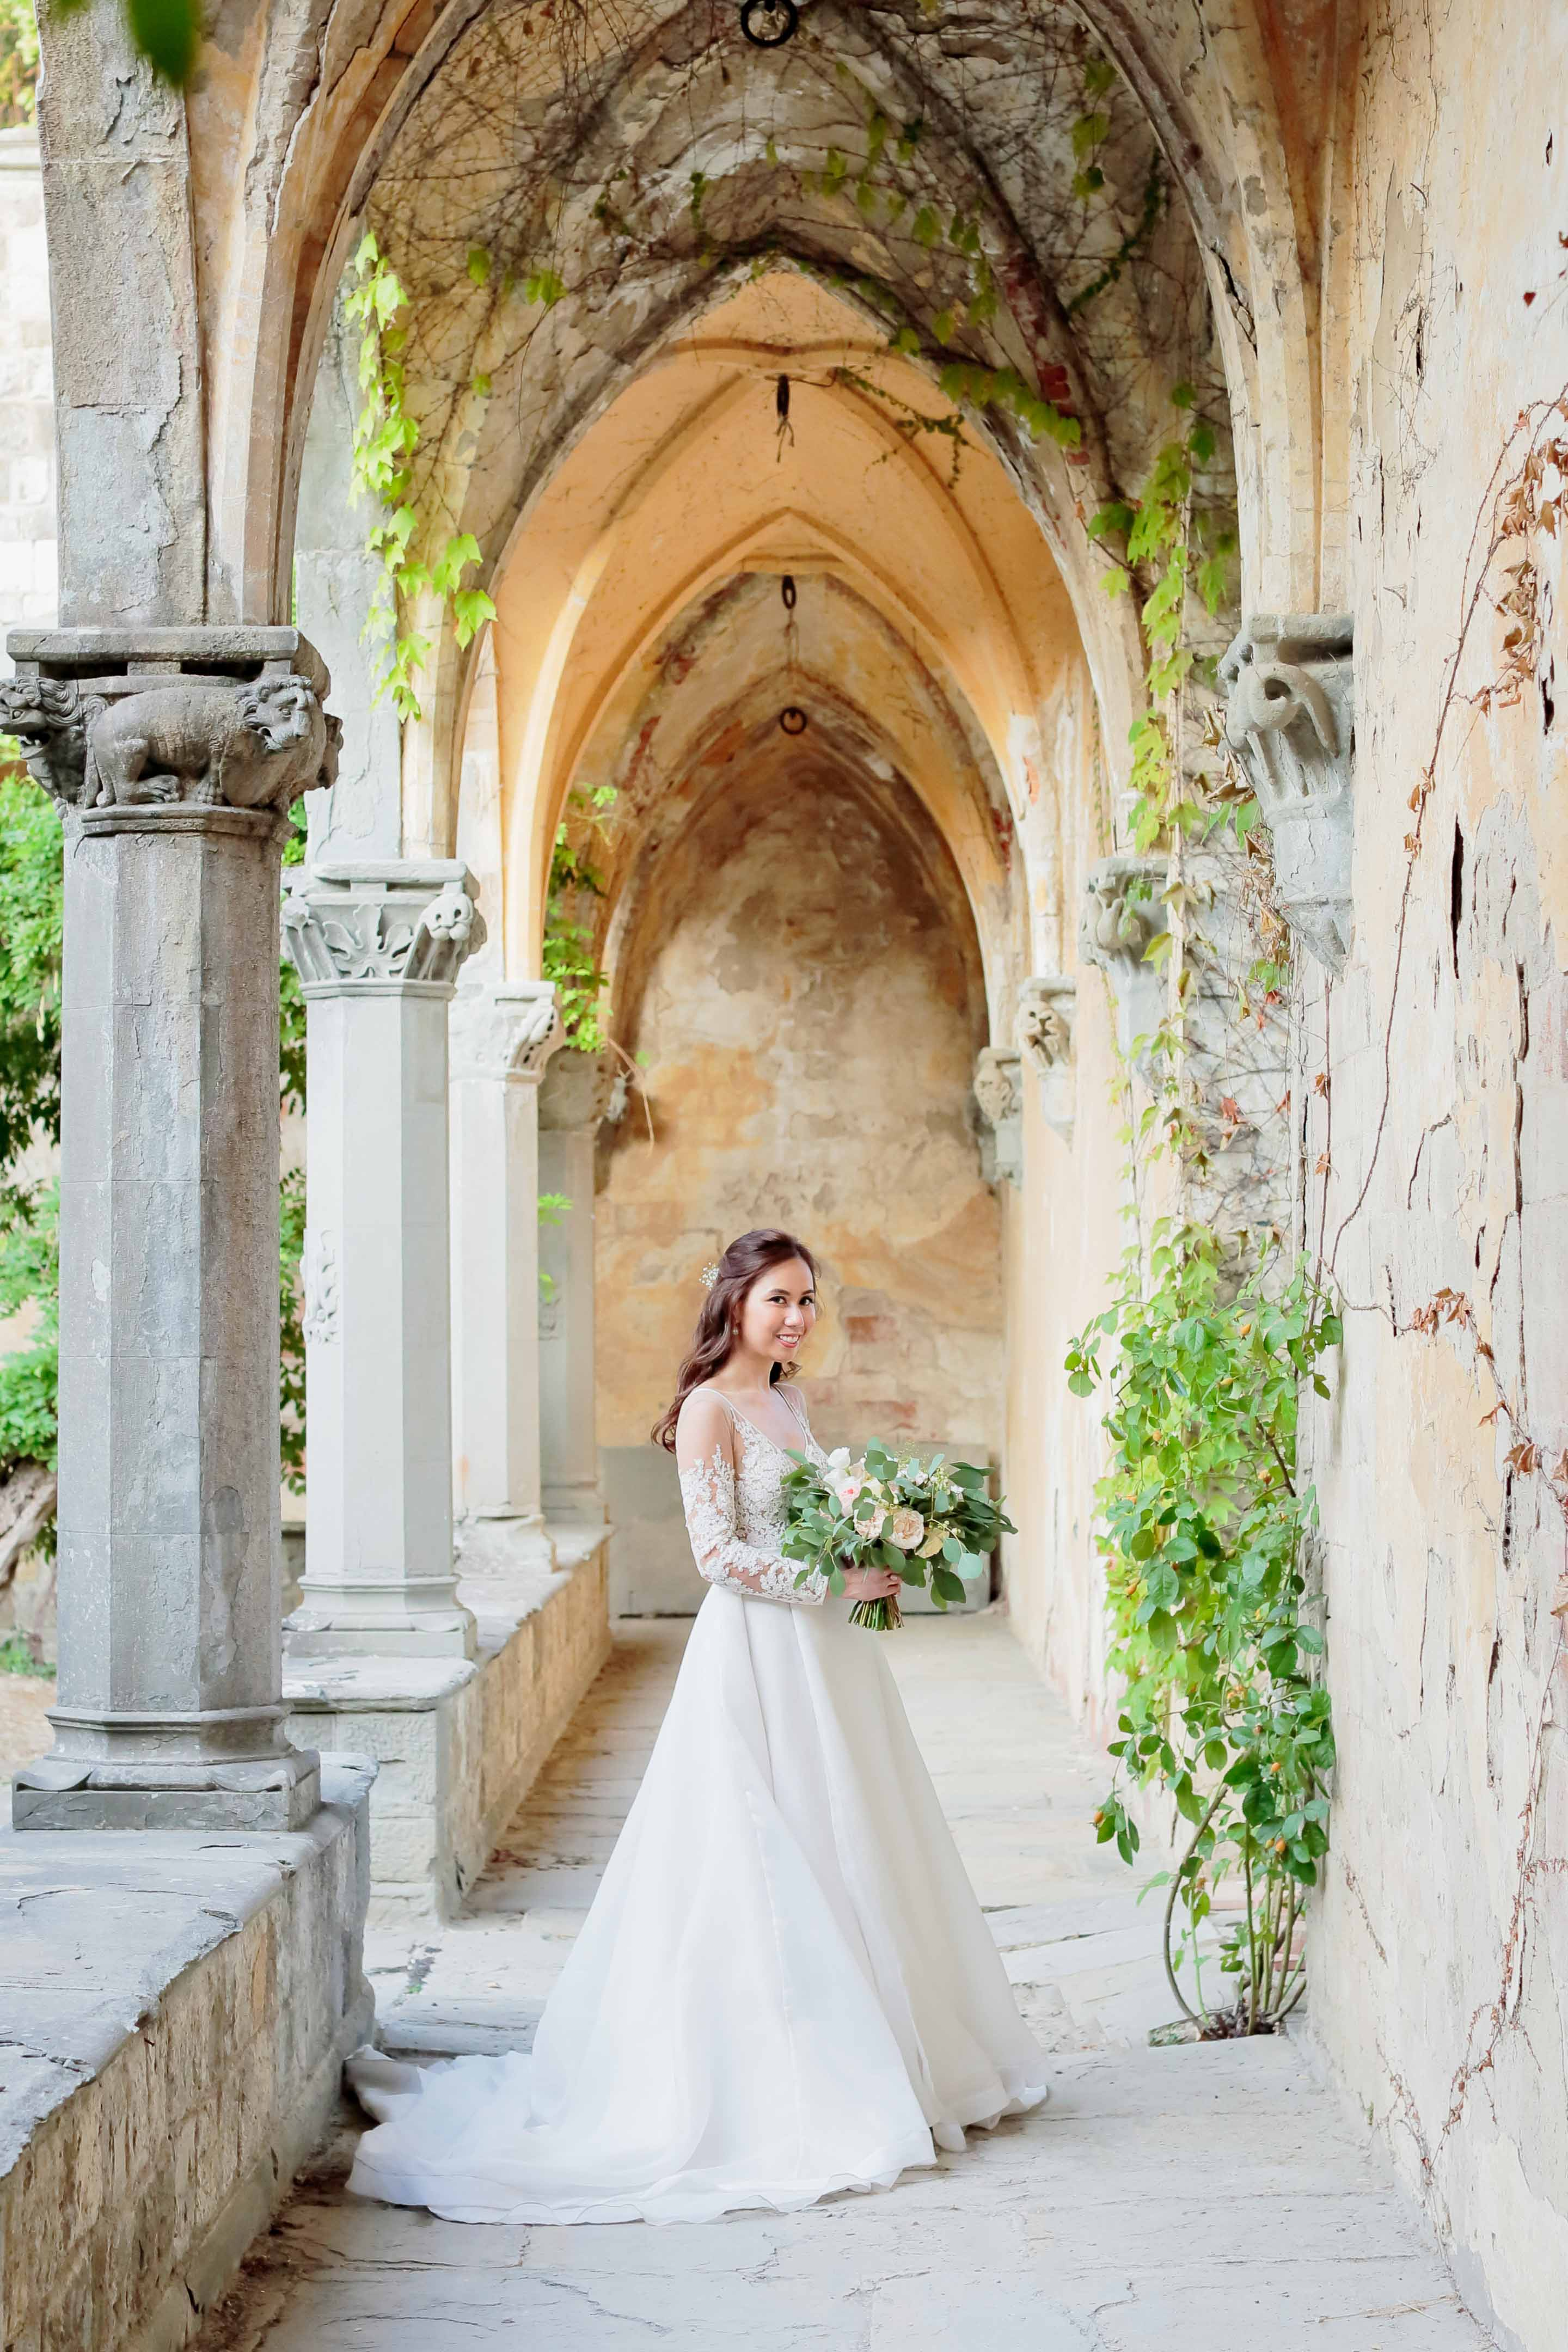 lovely bride somewhere in tuscany